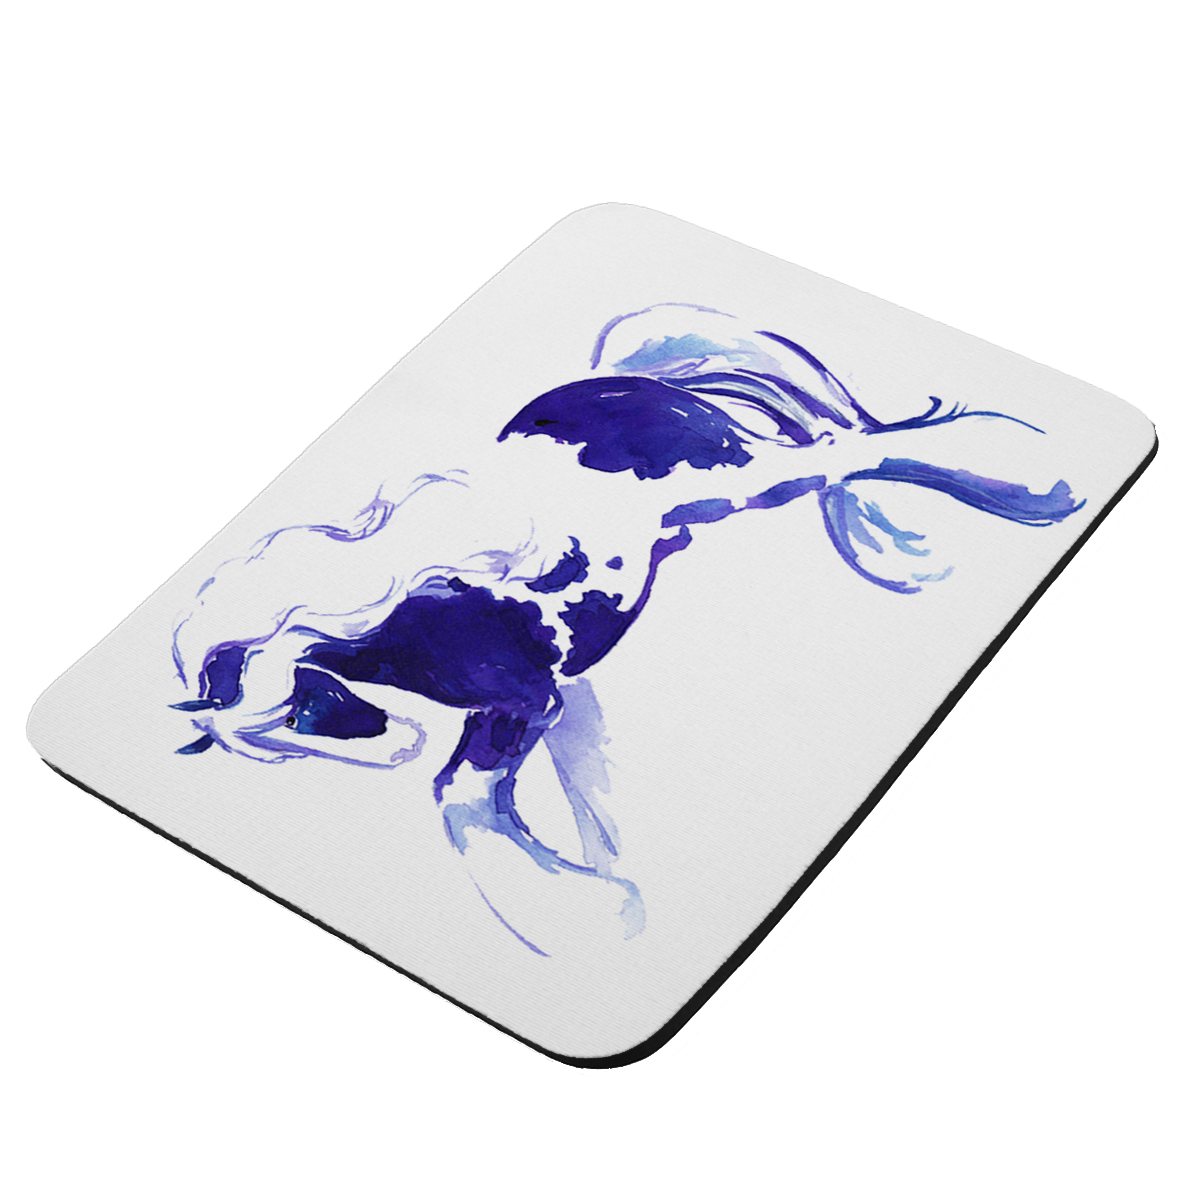 Prancing Piebald Gypsy Vanner Stallion in Purple and Blue Abstract Horse Art by Denise Every - KuzmarK Mousepad / Hot Pad / Trivet